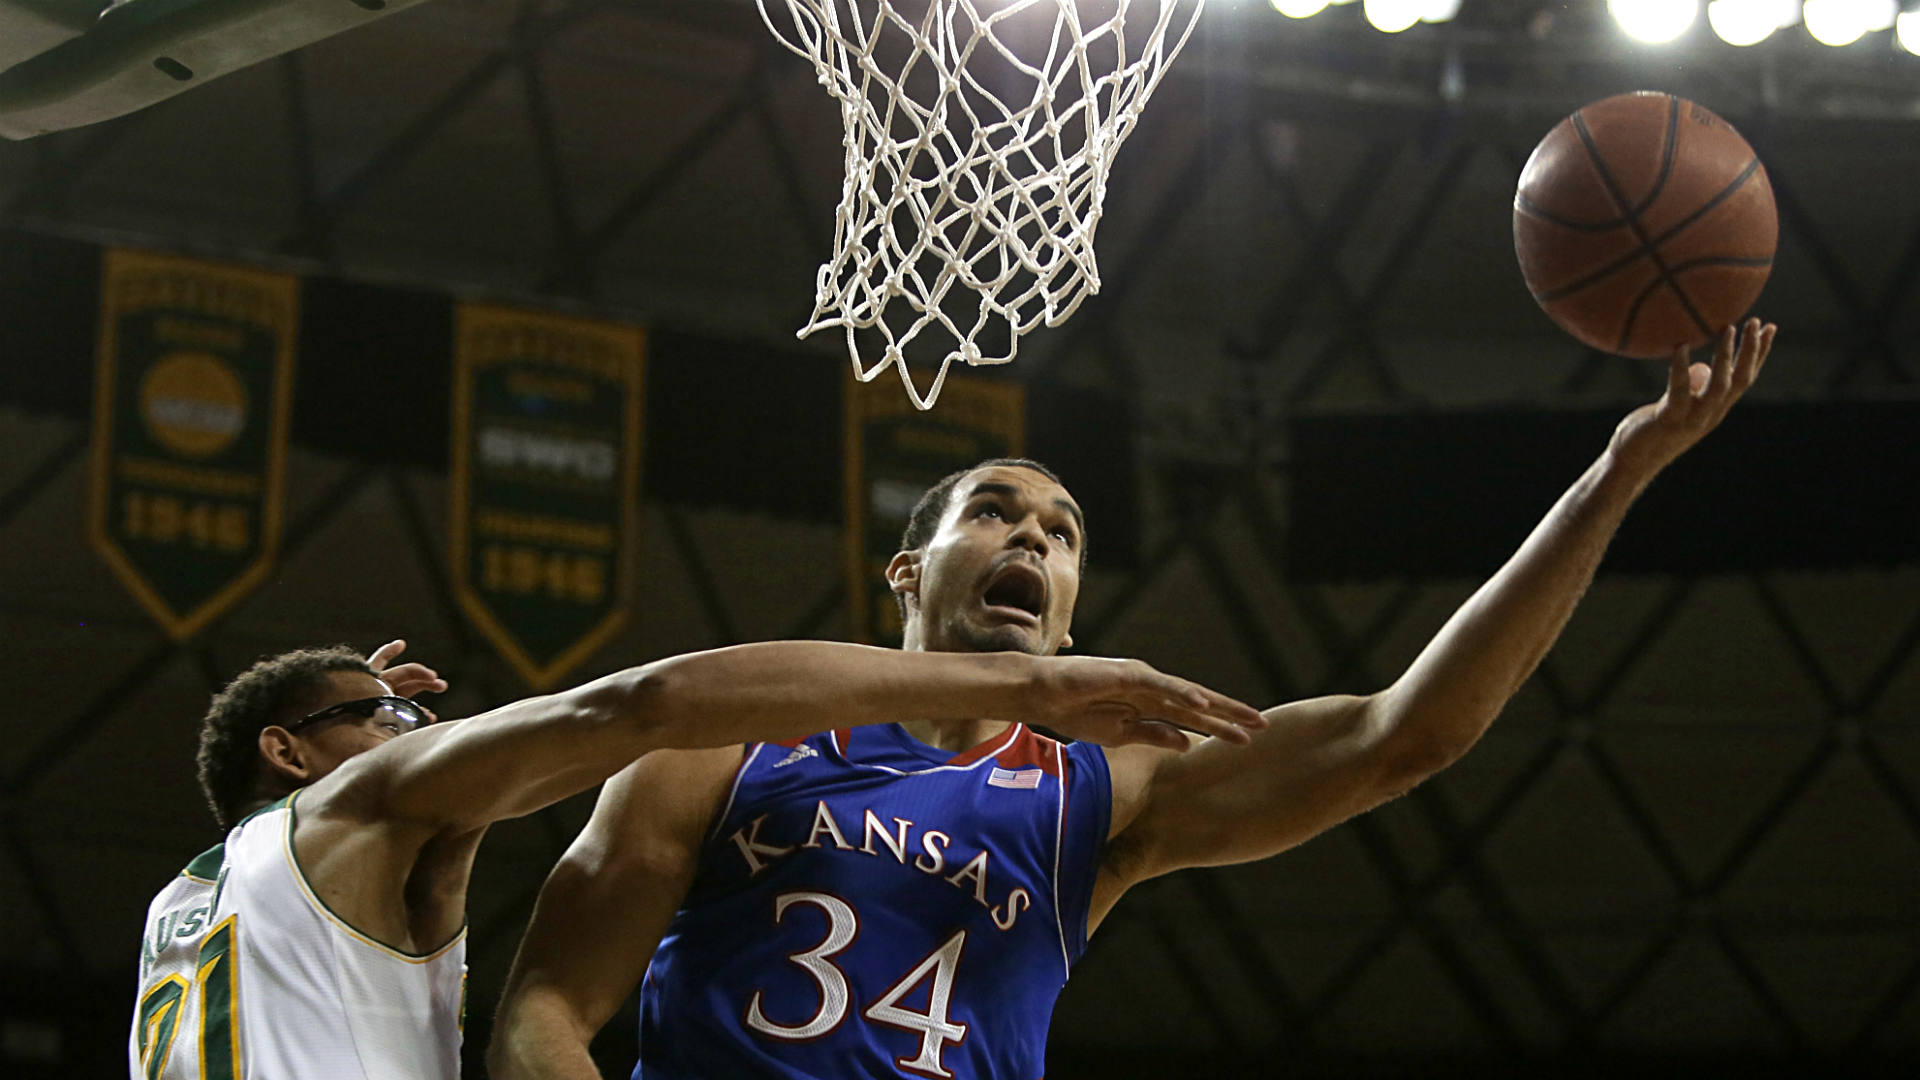 College basketball betting lines and picks – Kansas hosts WVU with eye on Big 12 title